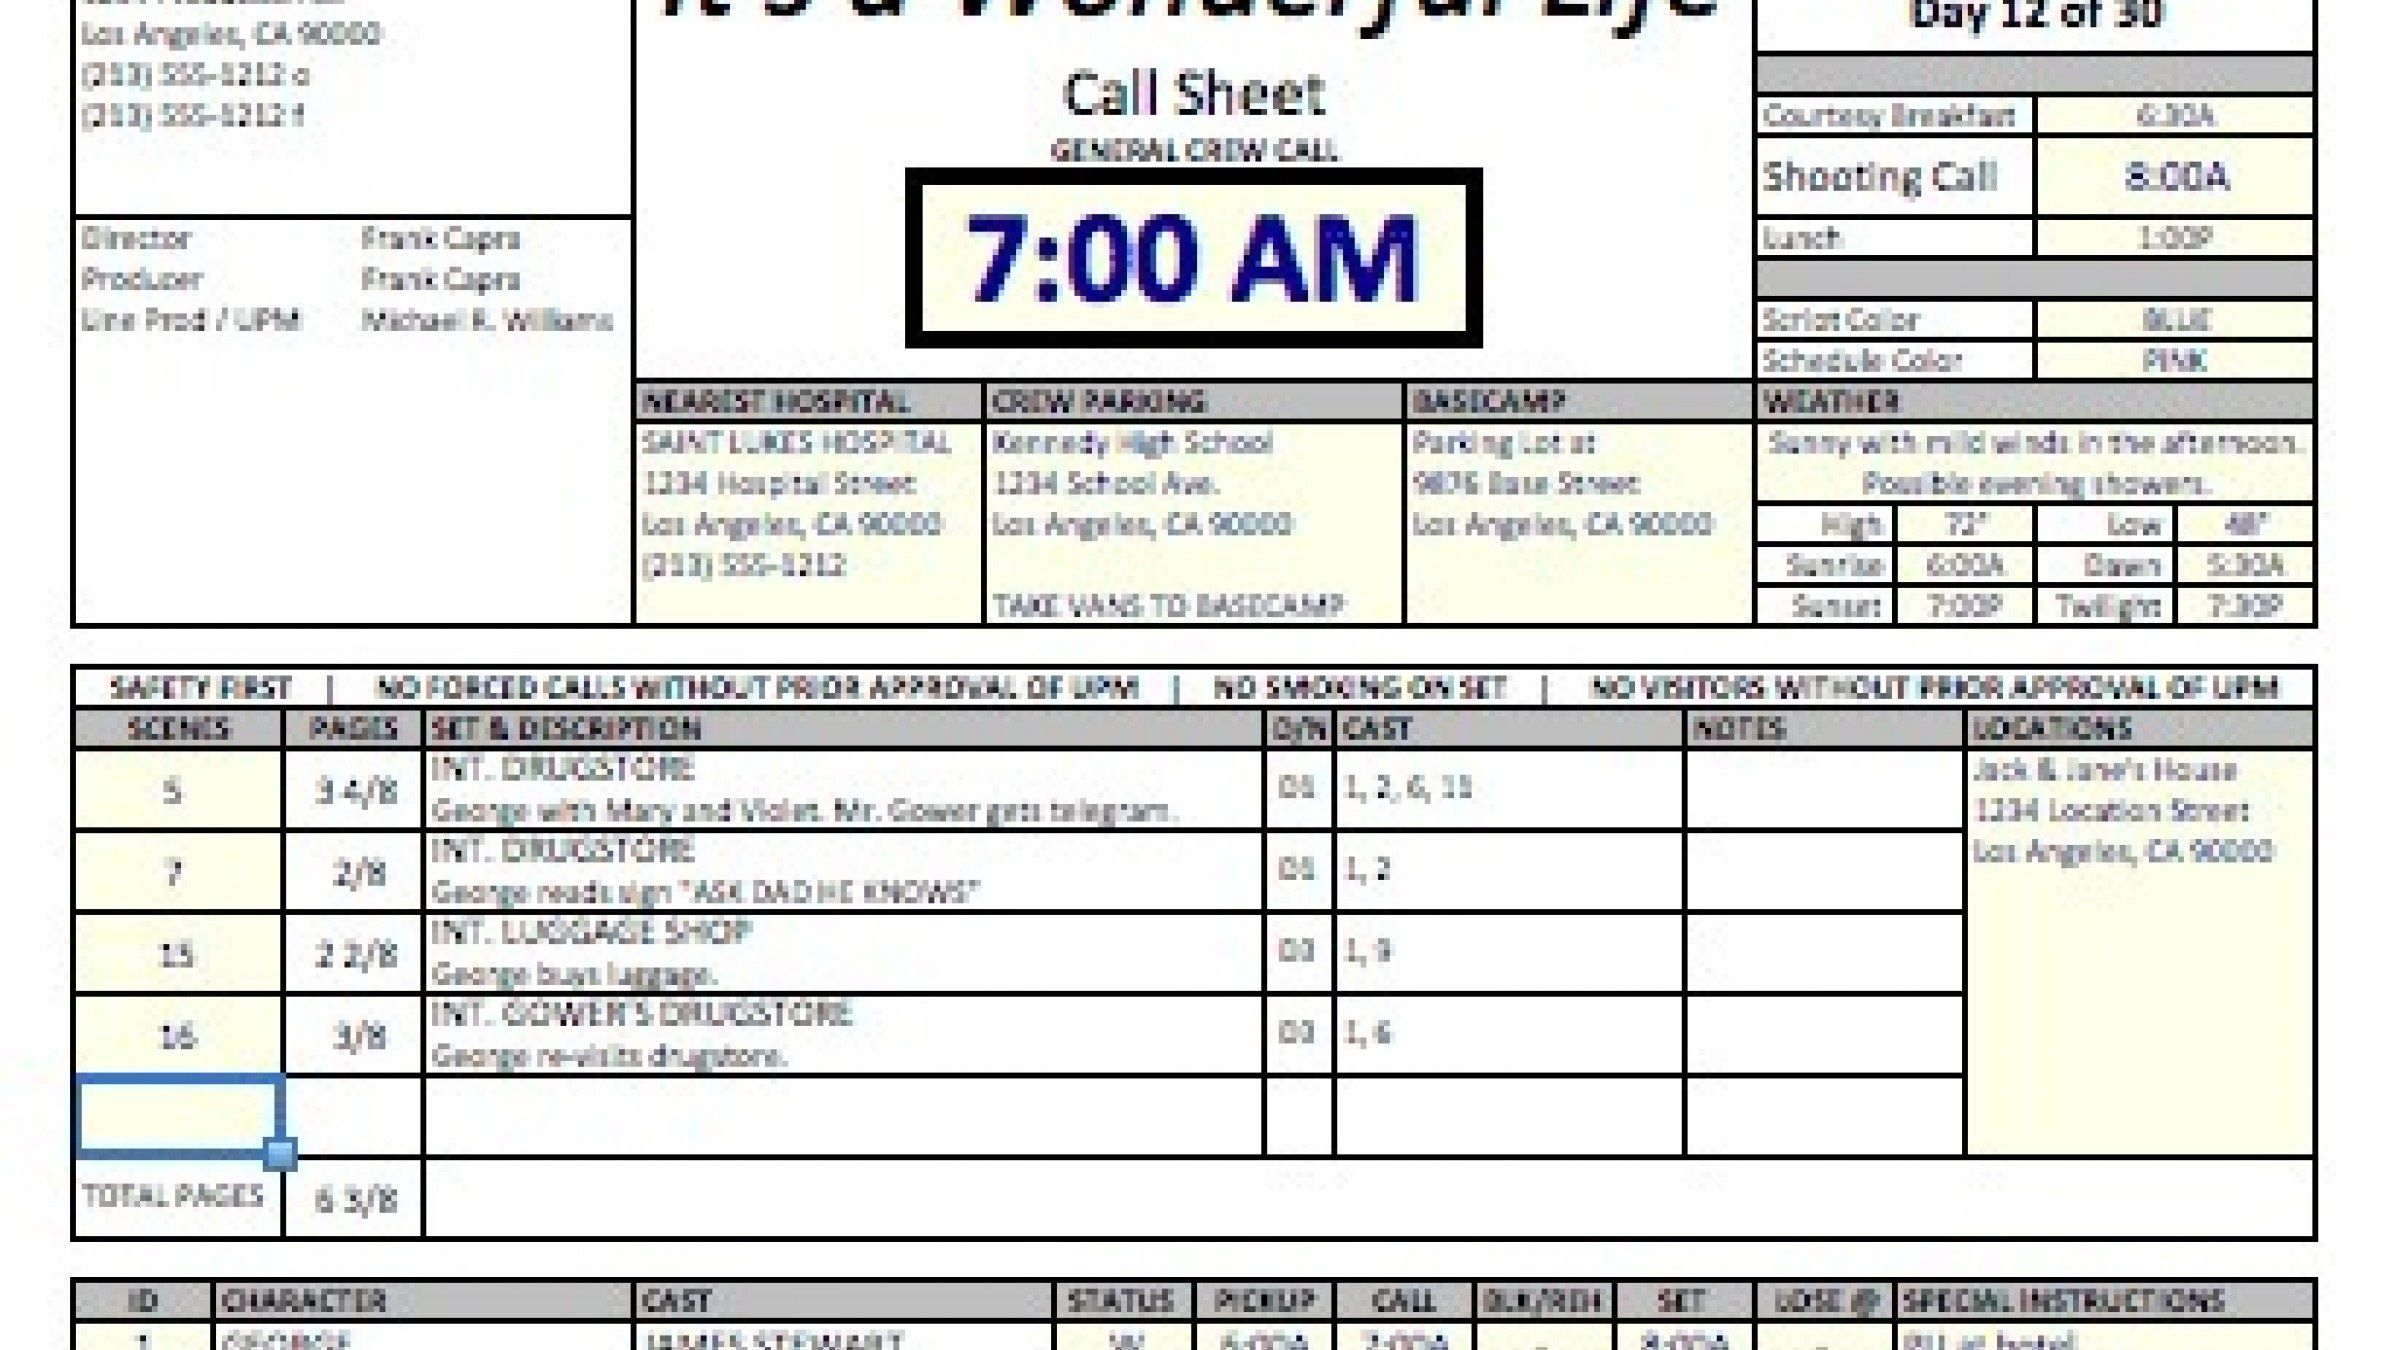 010 Frightening Film Call Sheet Template Inspiration  Movie Excel Example Google DocFull